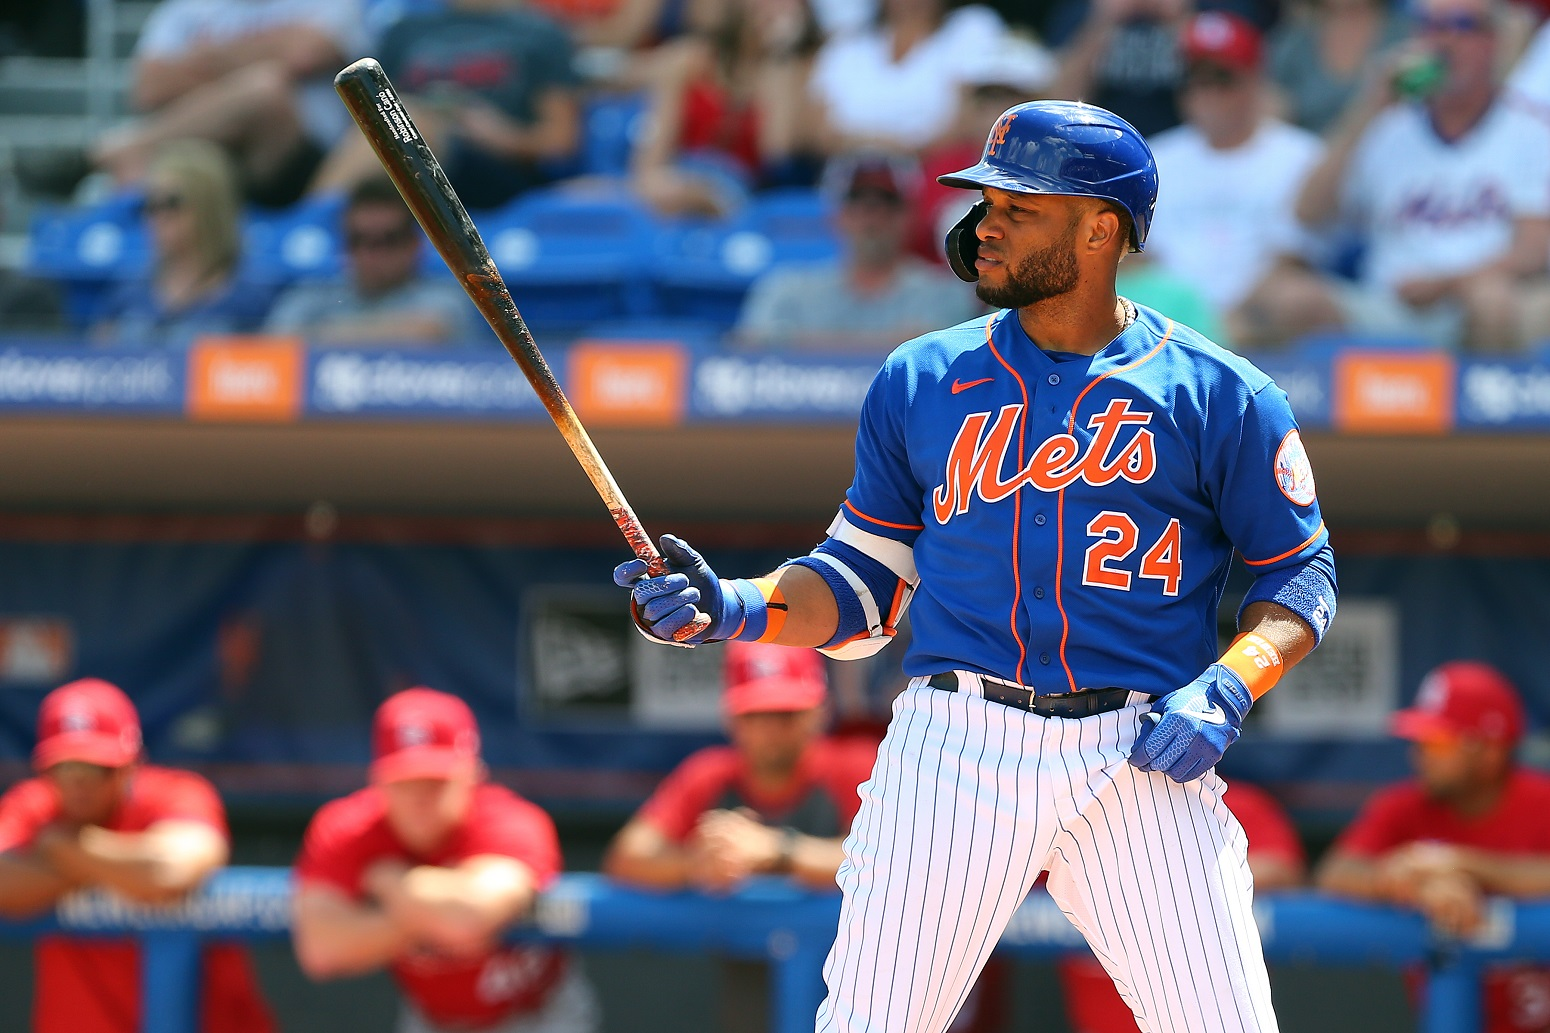 Robinson Cano's $24 Million Mistake Could Be a Blessing in Disguise For the Mets